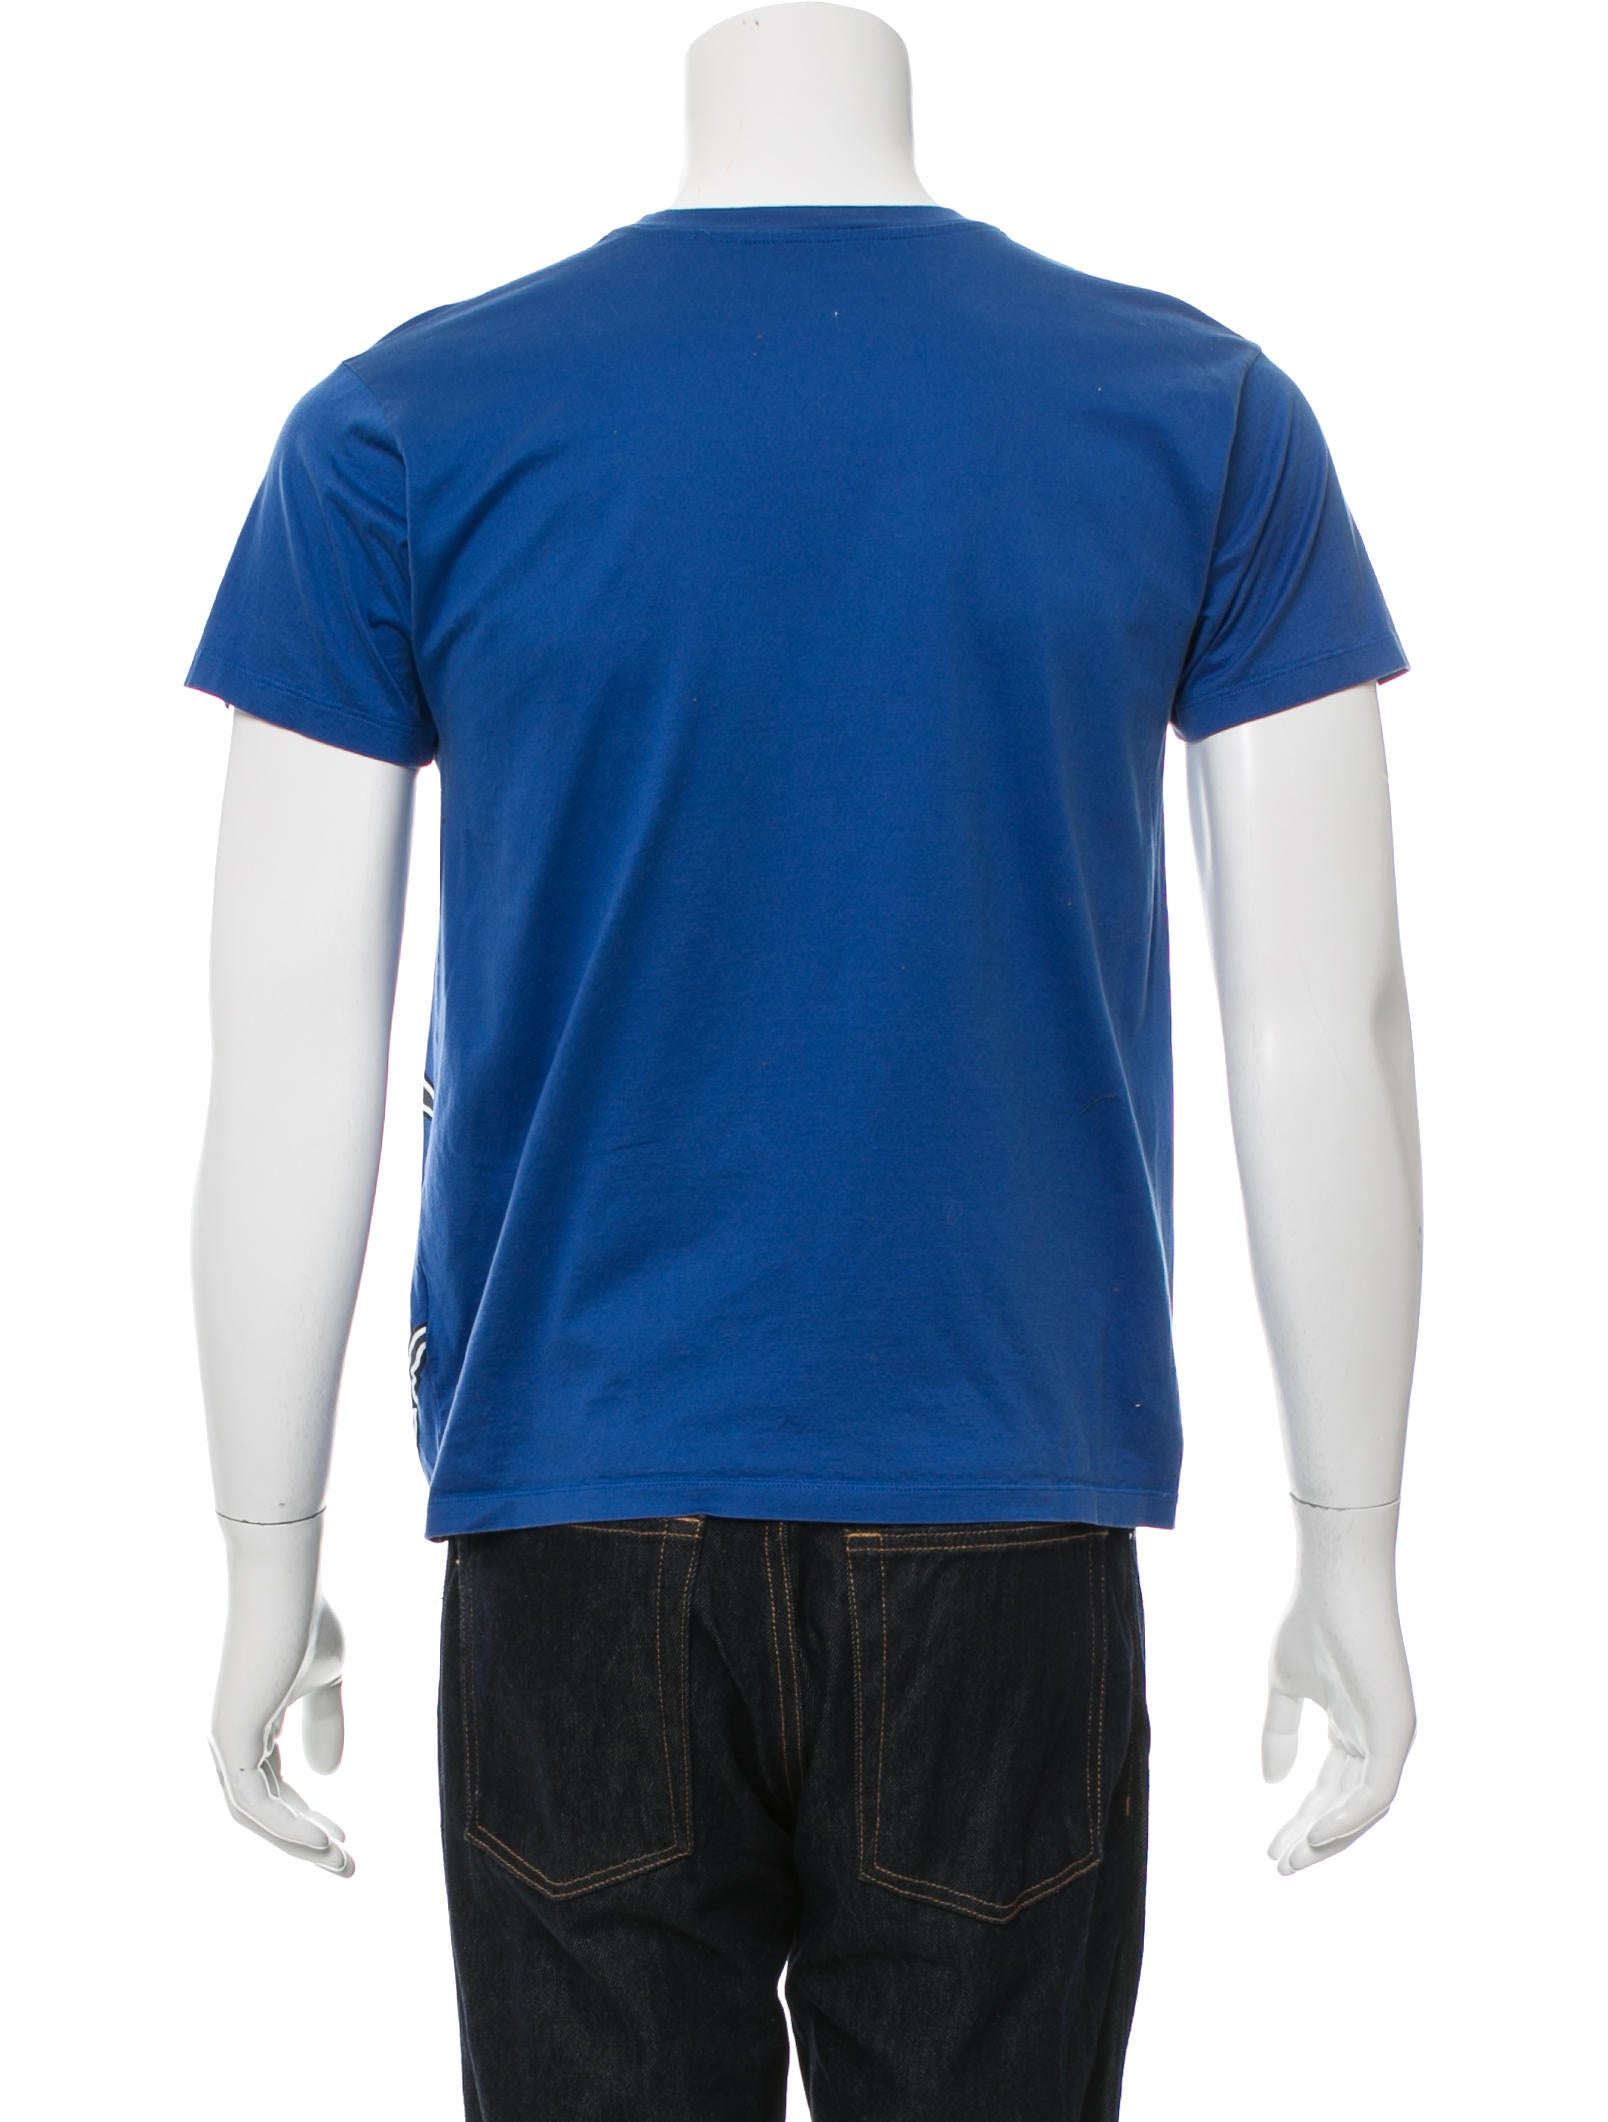 Pima Apparel is a U.S.A. company established in Headquarter located in Ontario, California (approx. 40 miles from downtown LA) Pima is a direct manufacturer and distributor of imported blank T-Shirts.